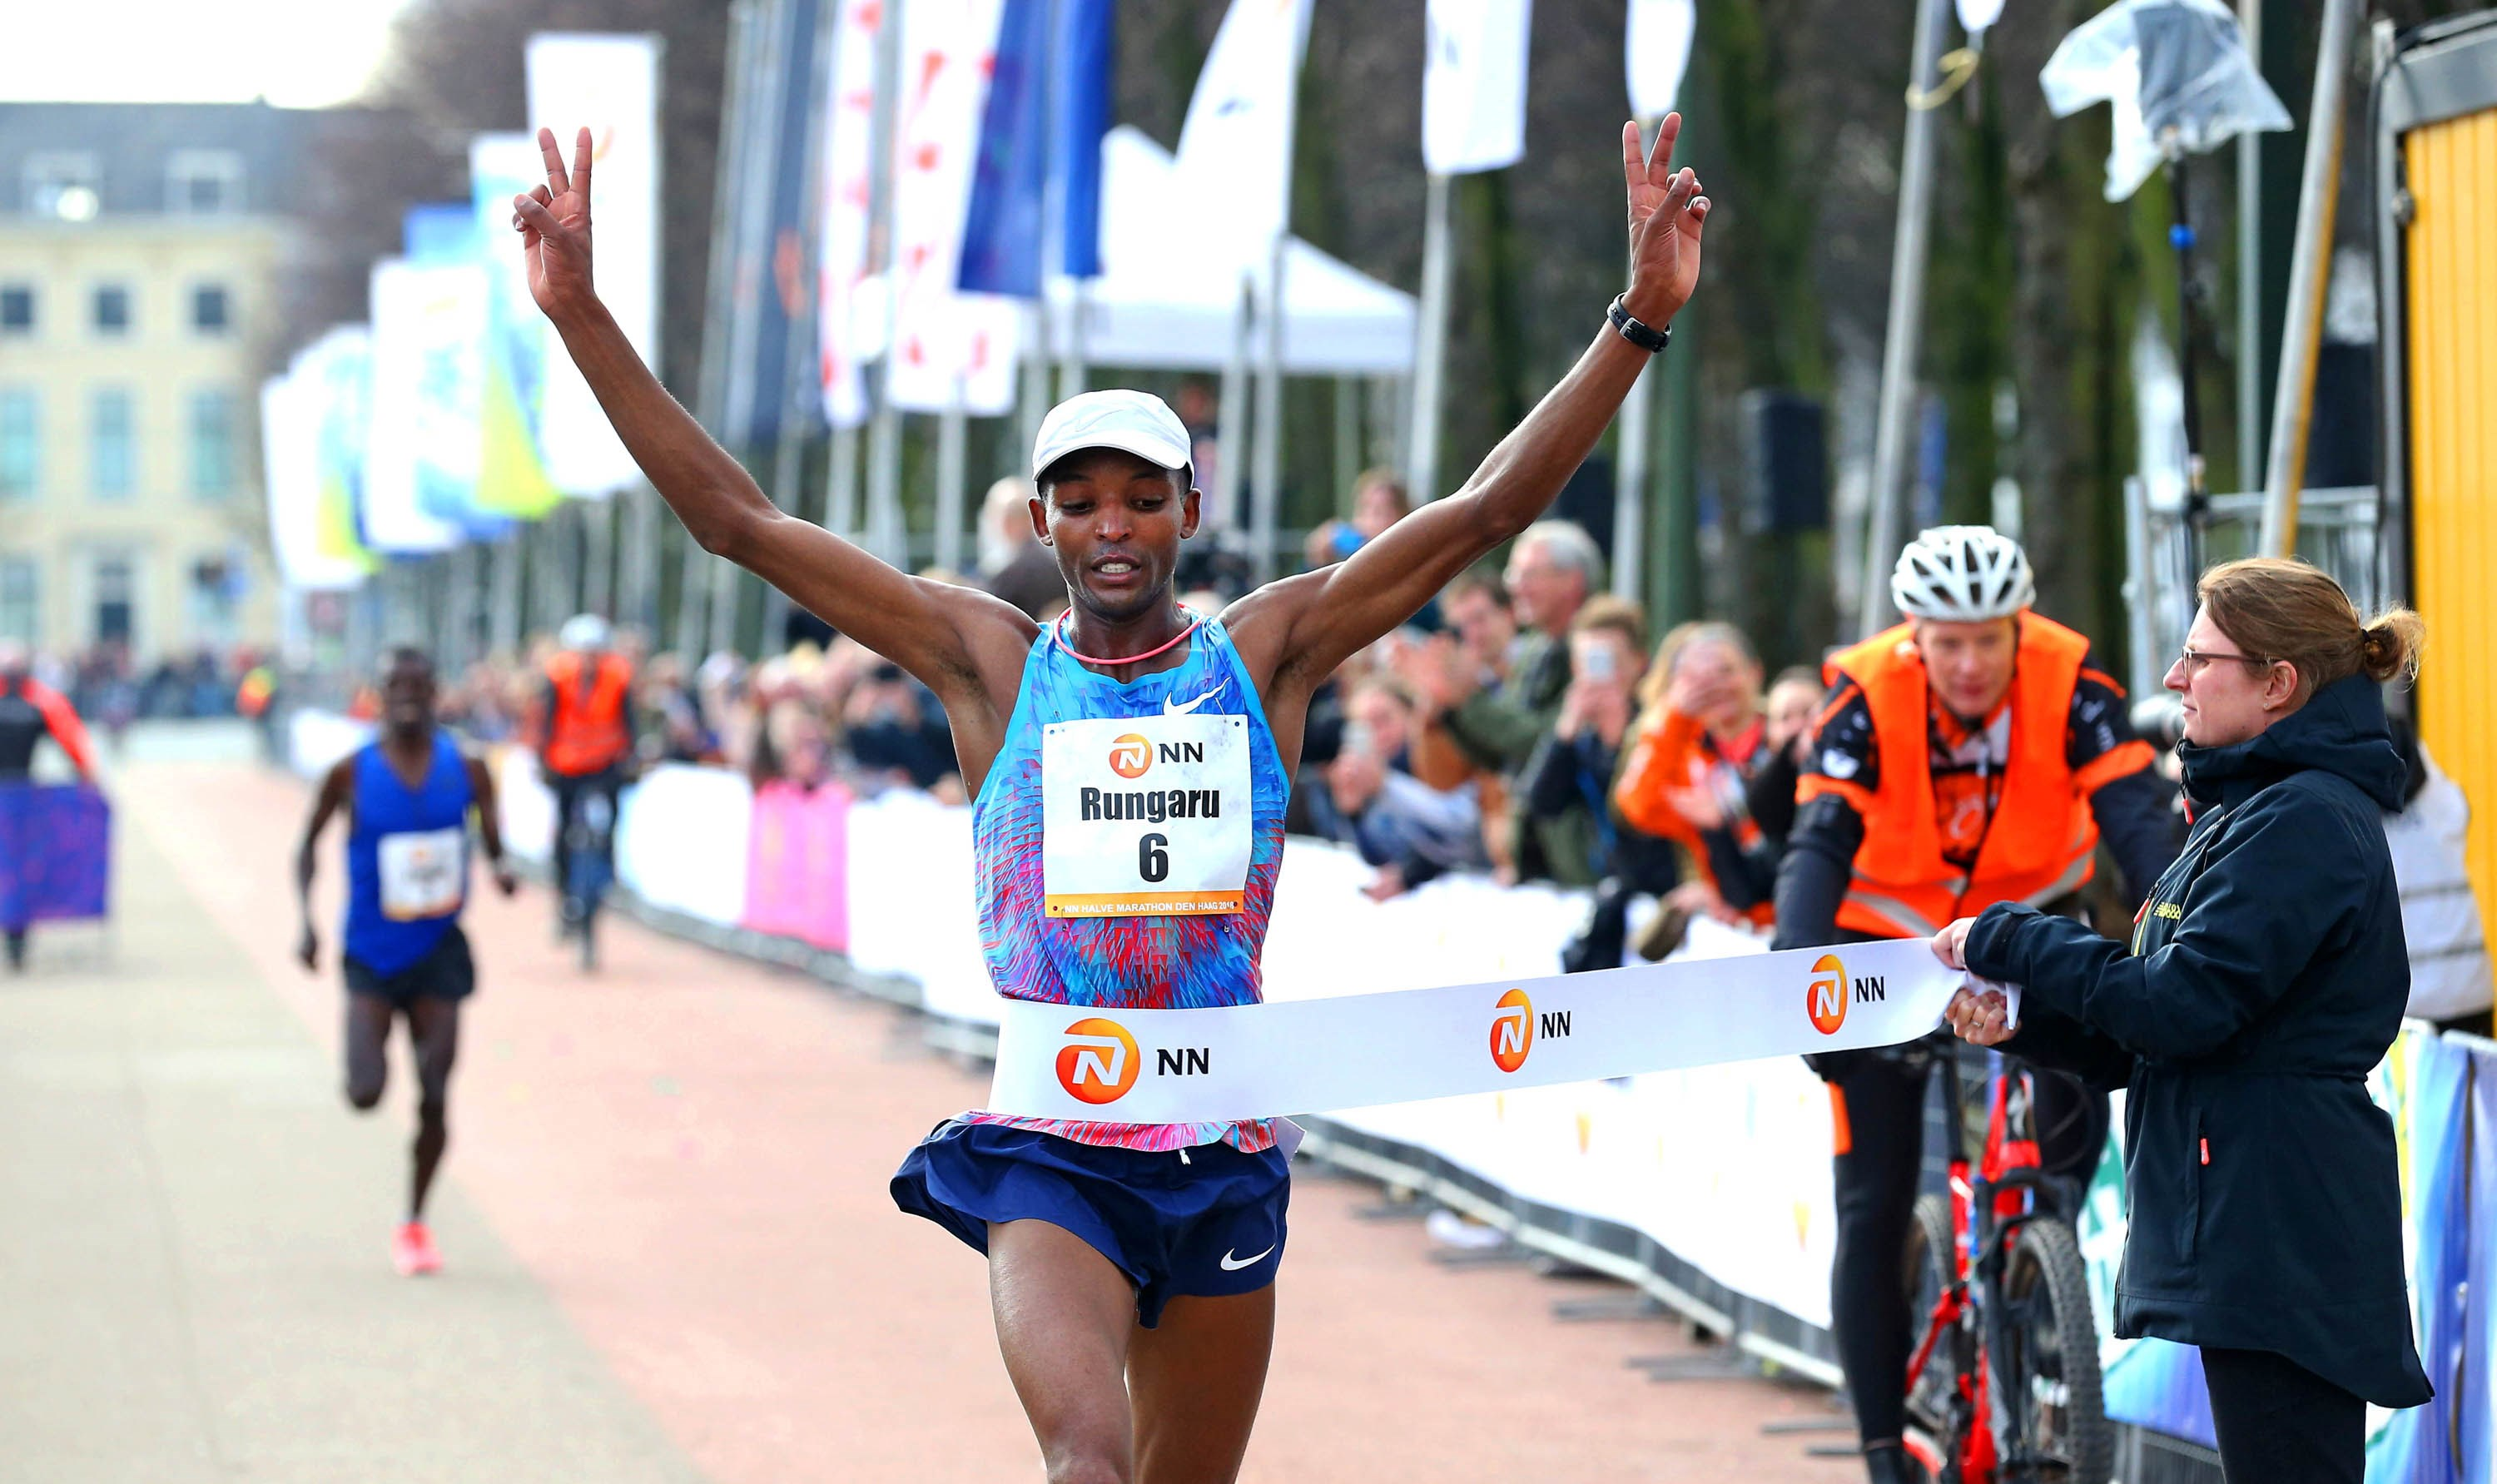 James Rungaru wint de 44e NN CPC Loop Den Haag in 59:38